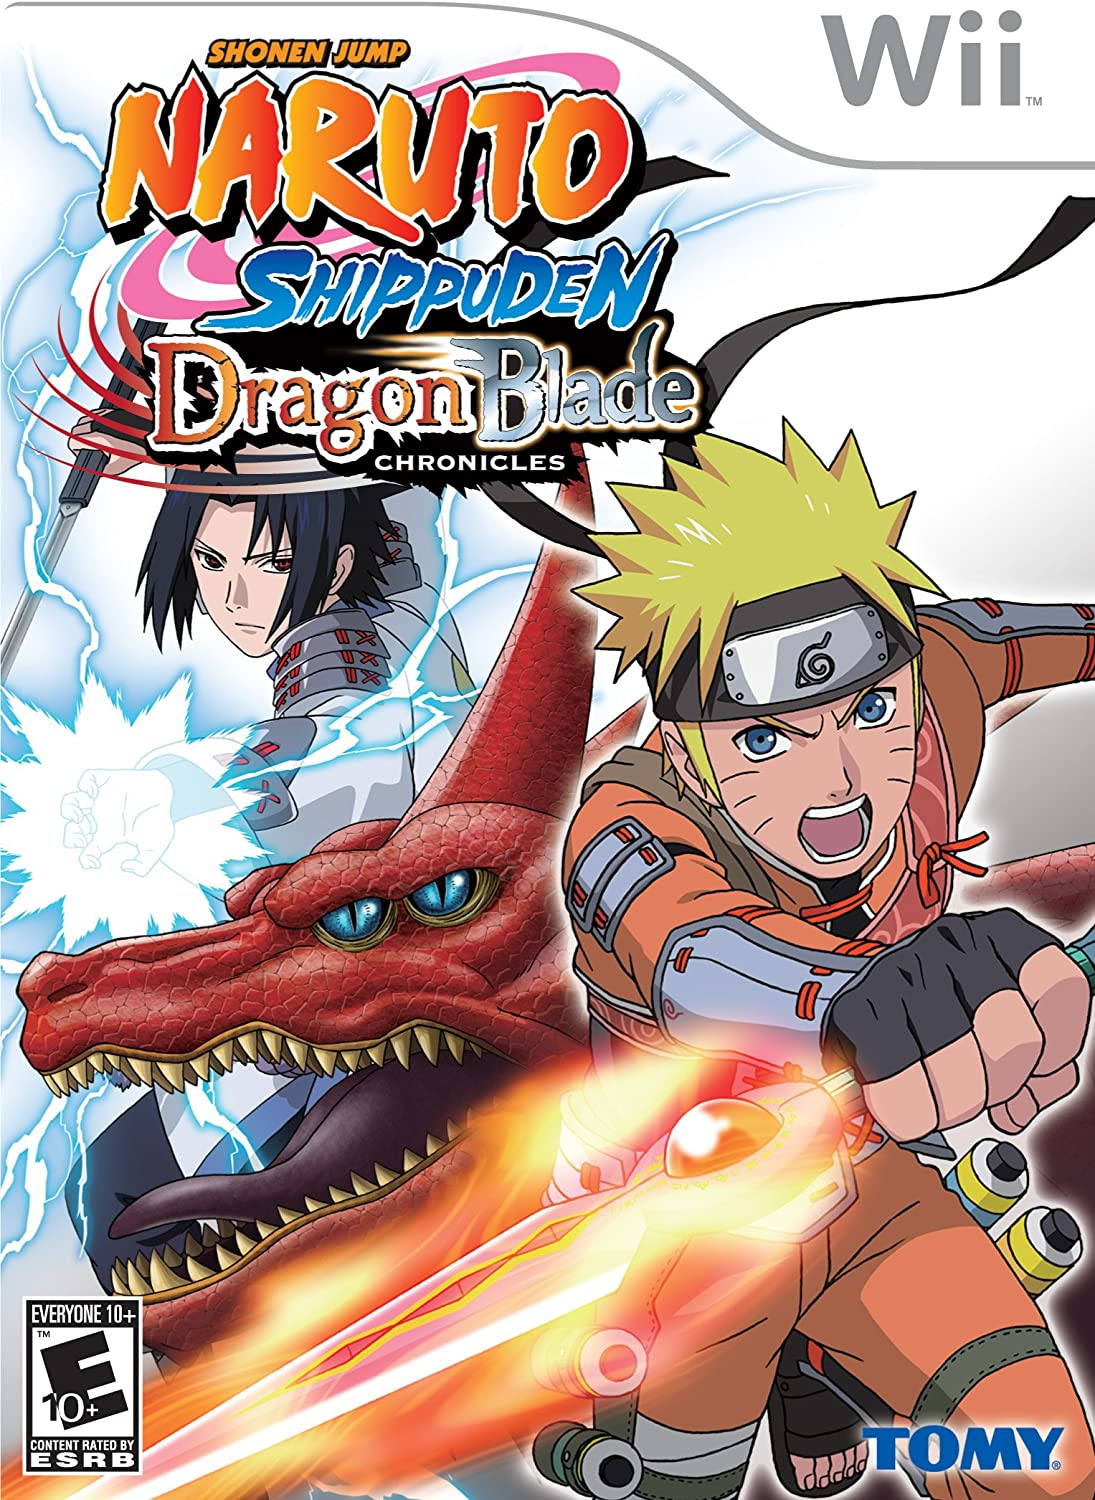 Amazon.com: Naruto Shippuden: Dragon Blade Chronicles ...